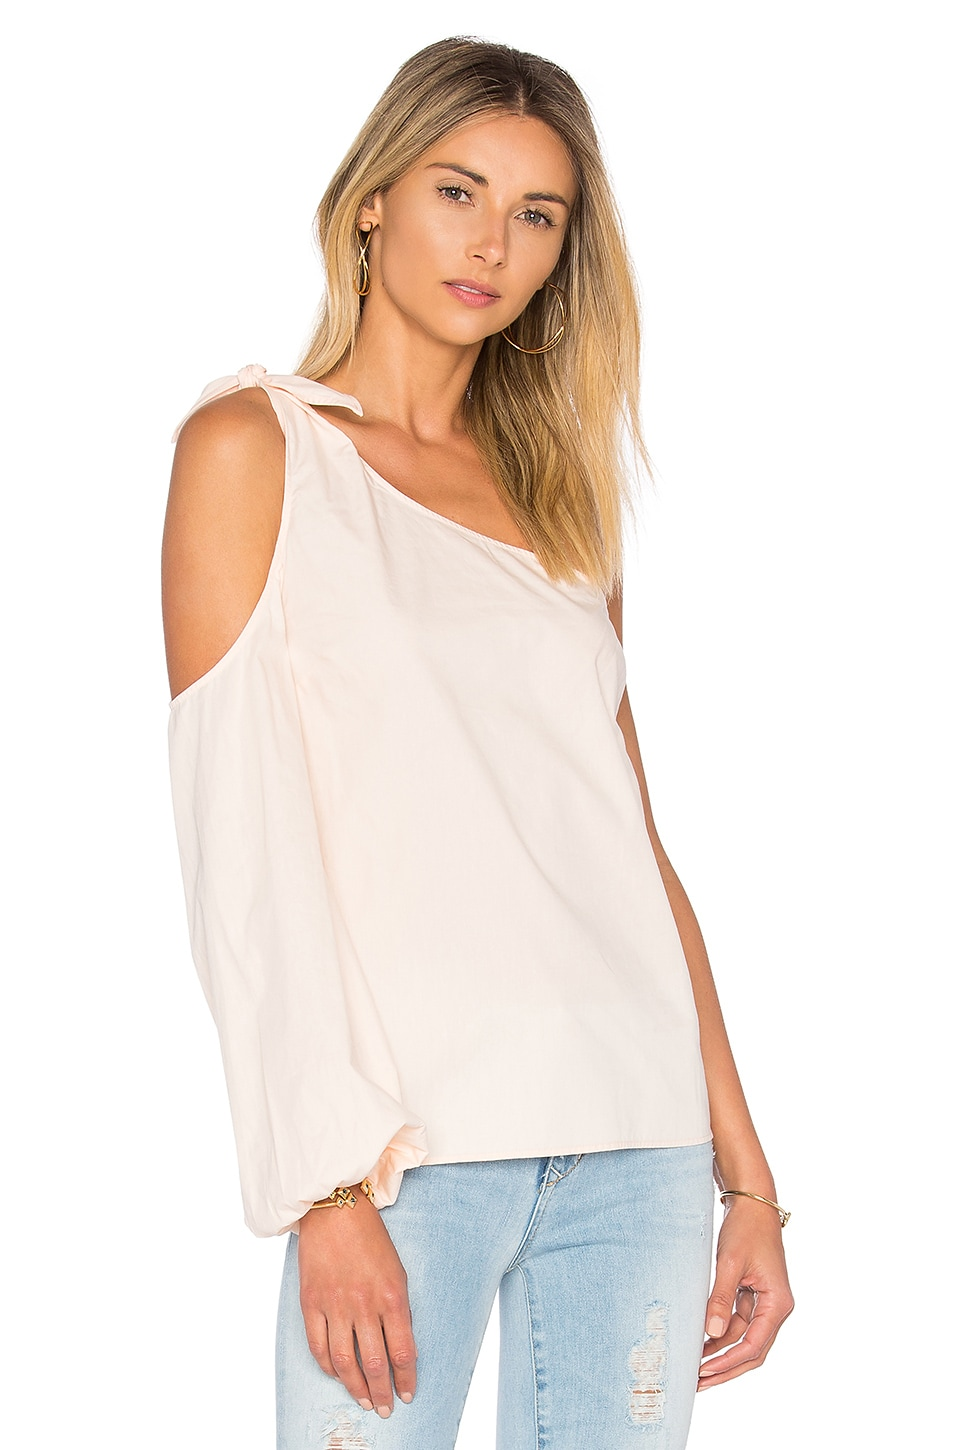 x REVOLVE The Asymmetric Shoulder Blouse by L'Academie